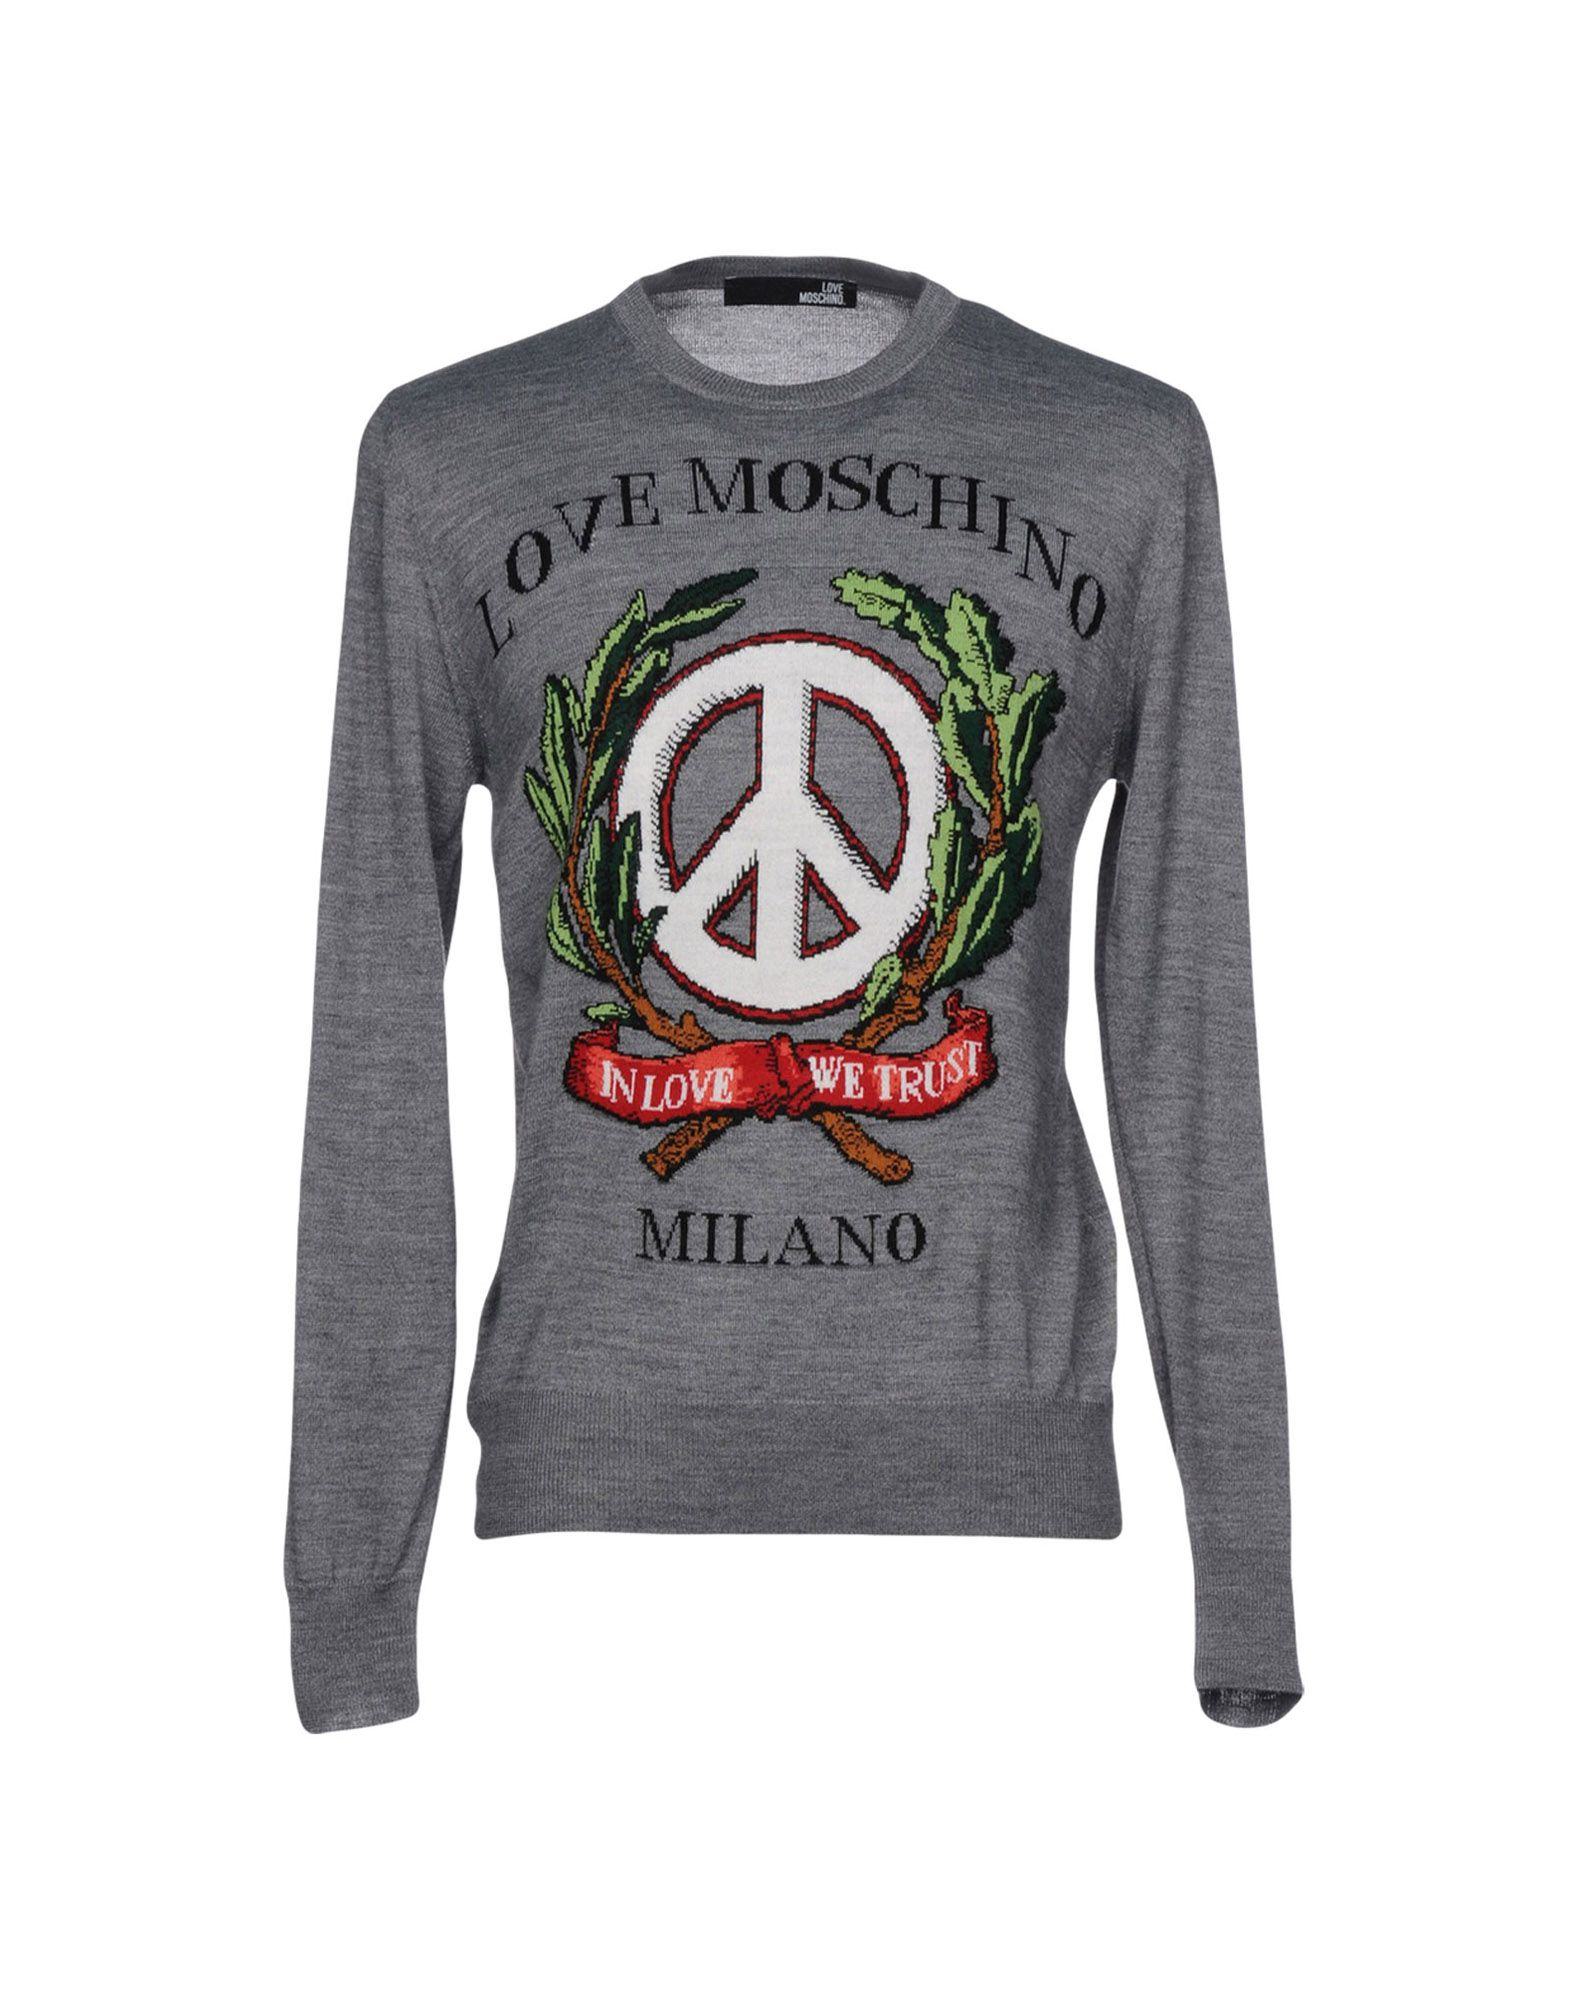 Moschino Men Shop Online Jeans T Shirts Bags And More At Yoox Andrew Smith Floral Printed Shirt Navy Xxl United States